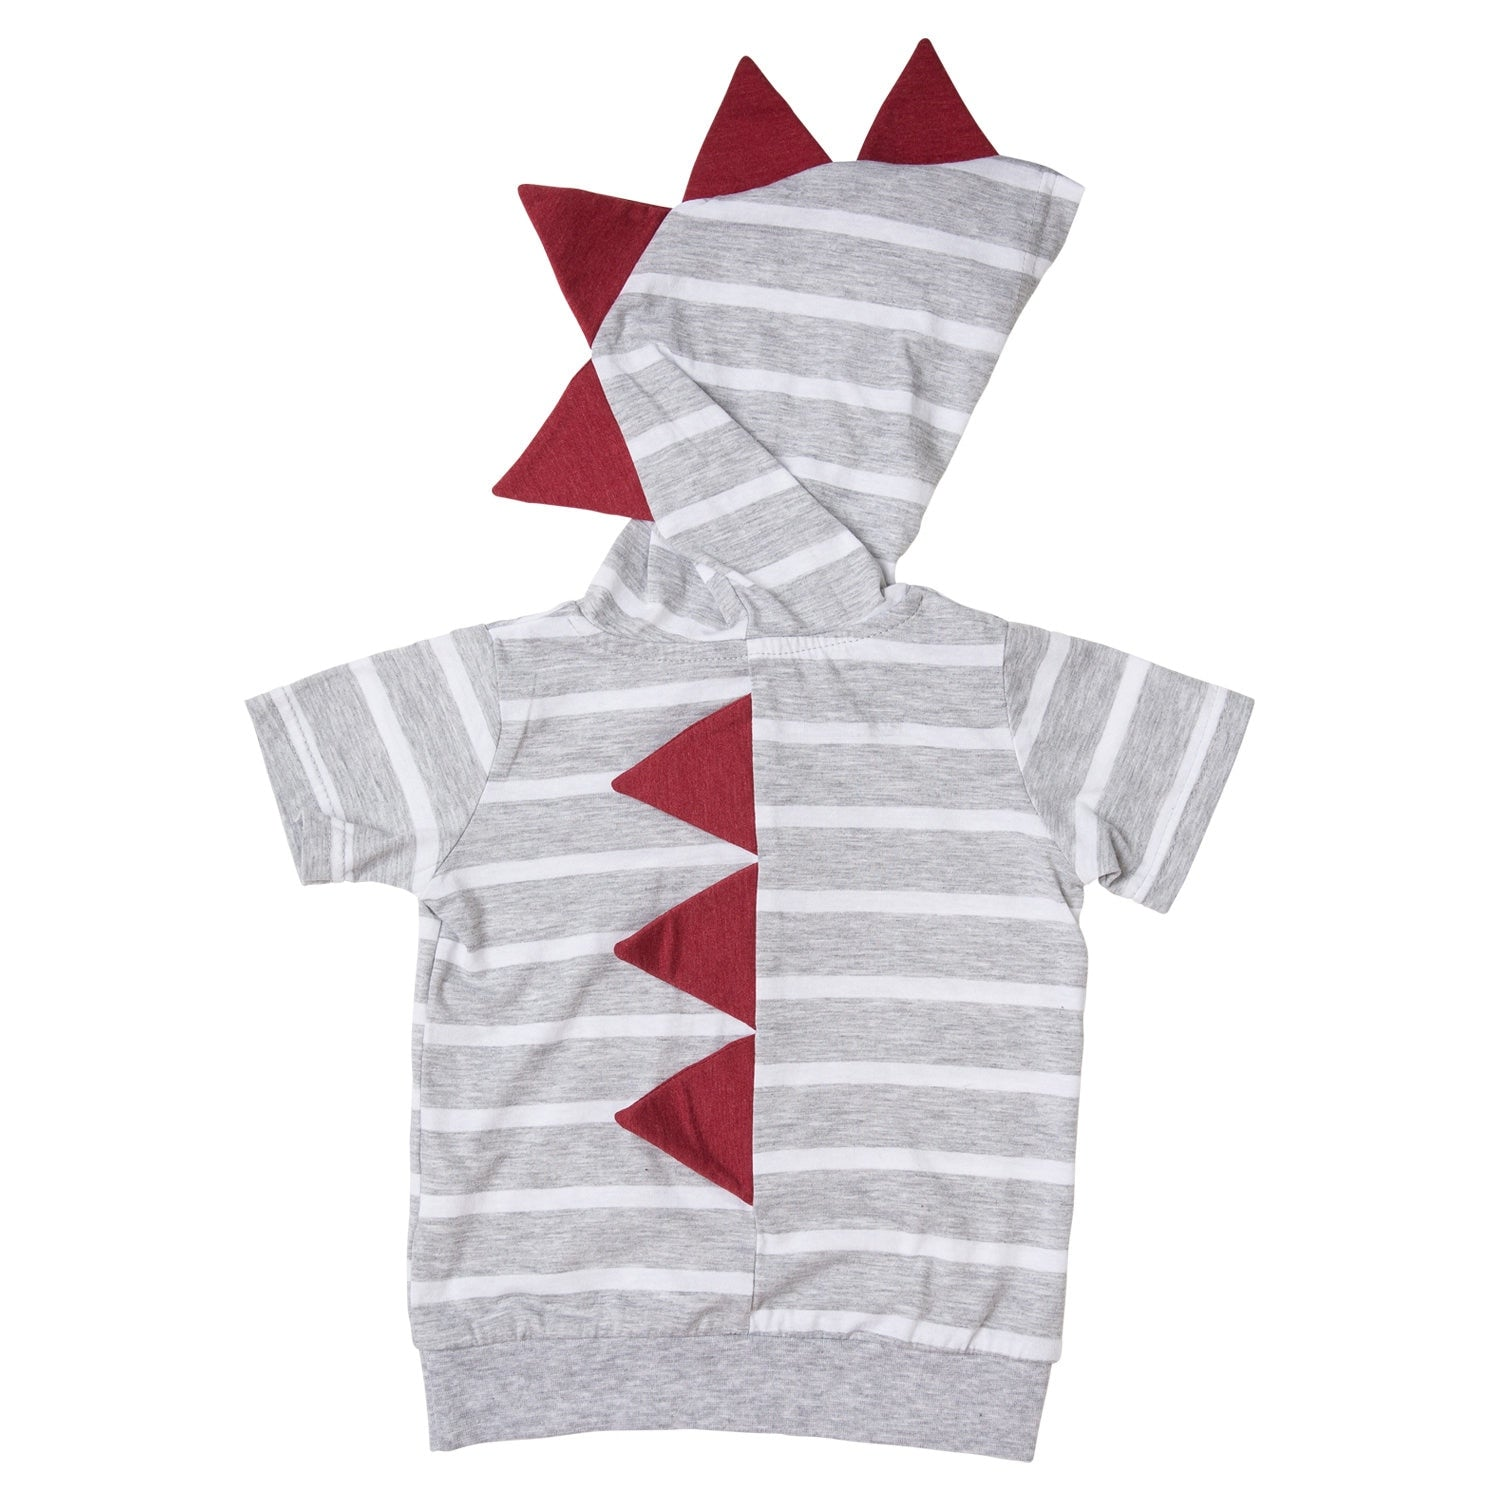 ssdino-tgs-thick-gray-stripe-short-sleeve-dino-hoodie-back-product.jpg